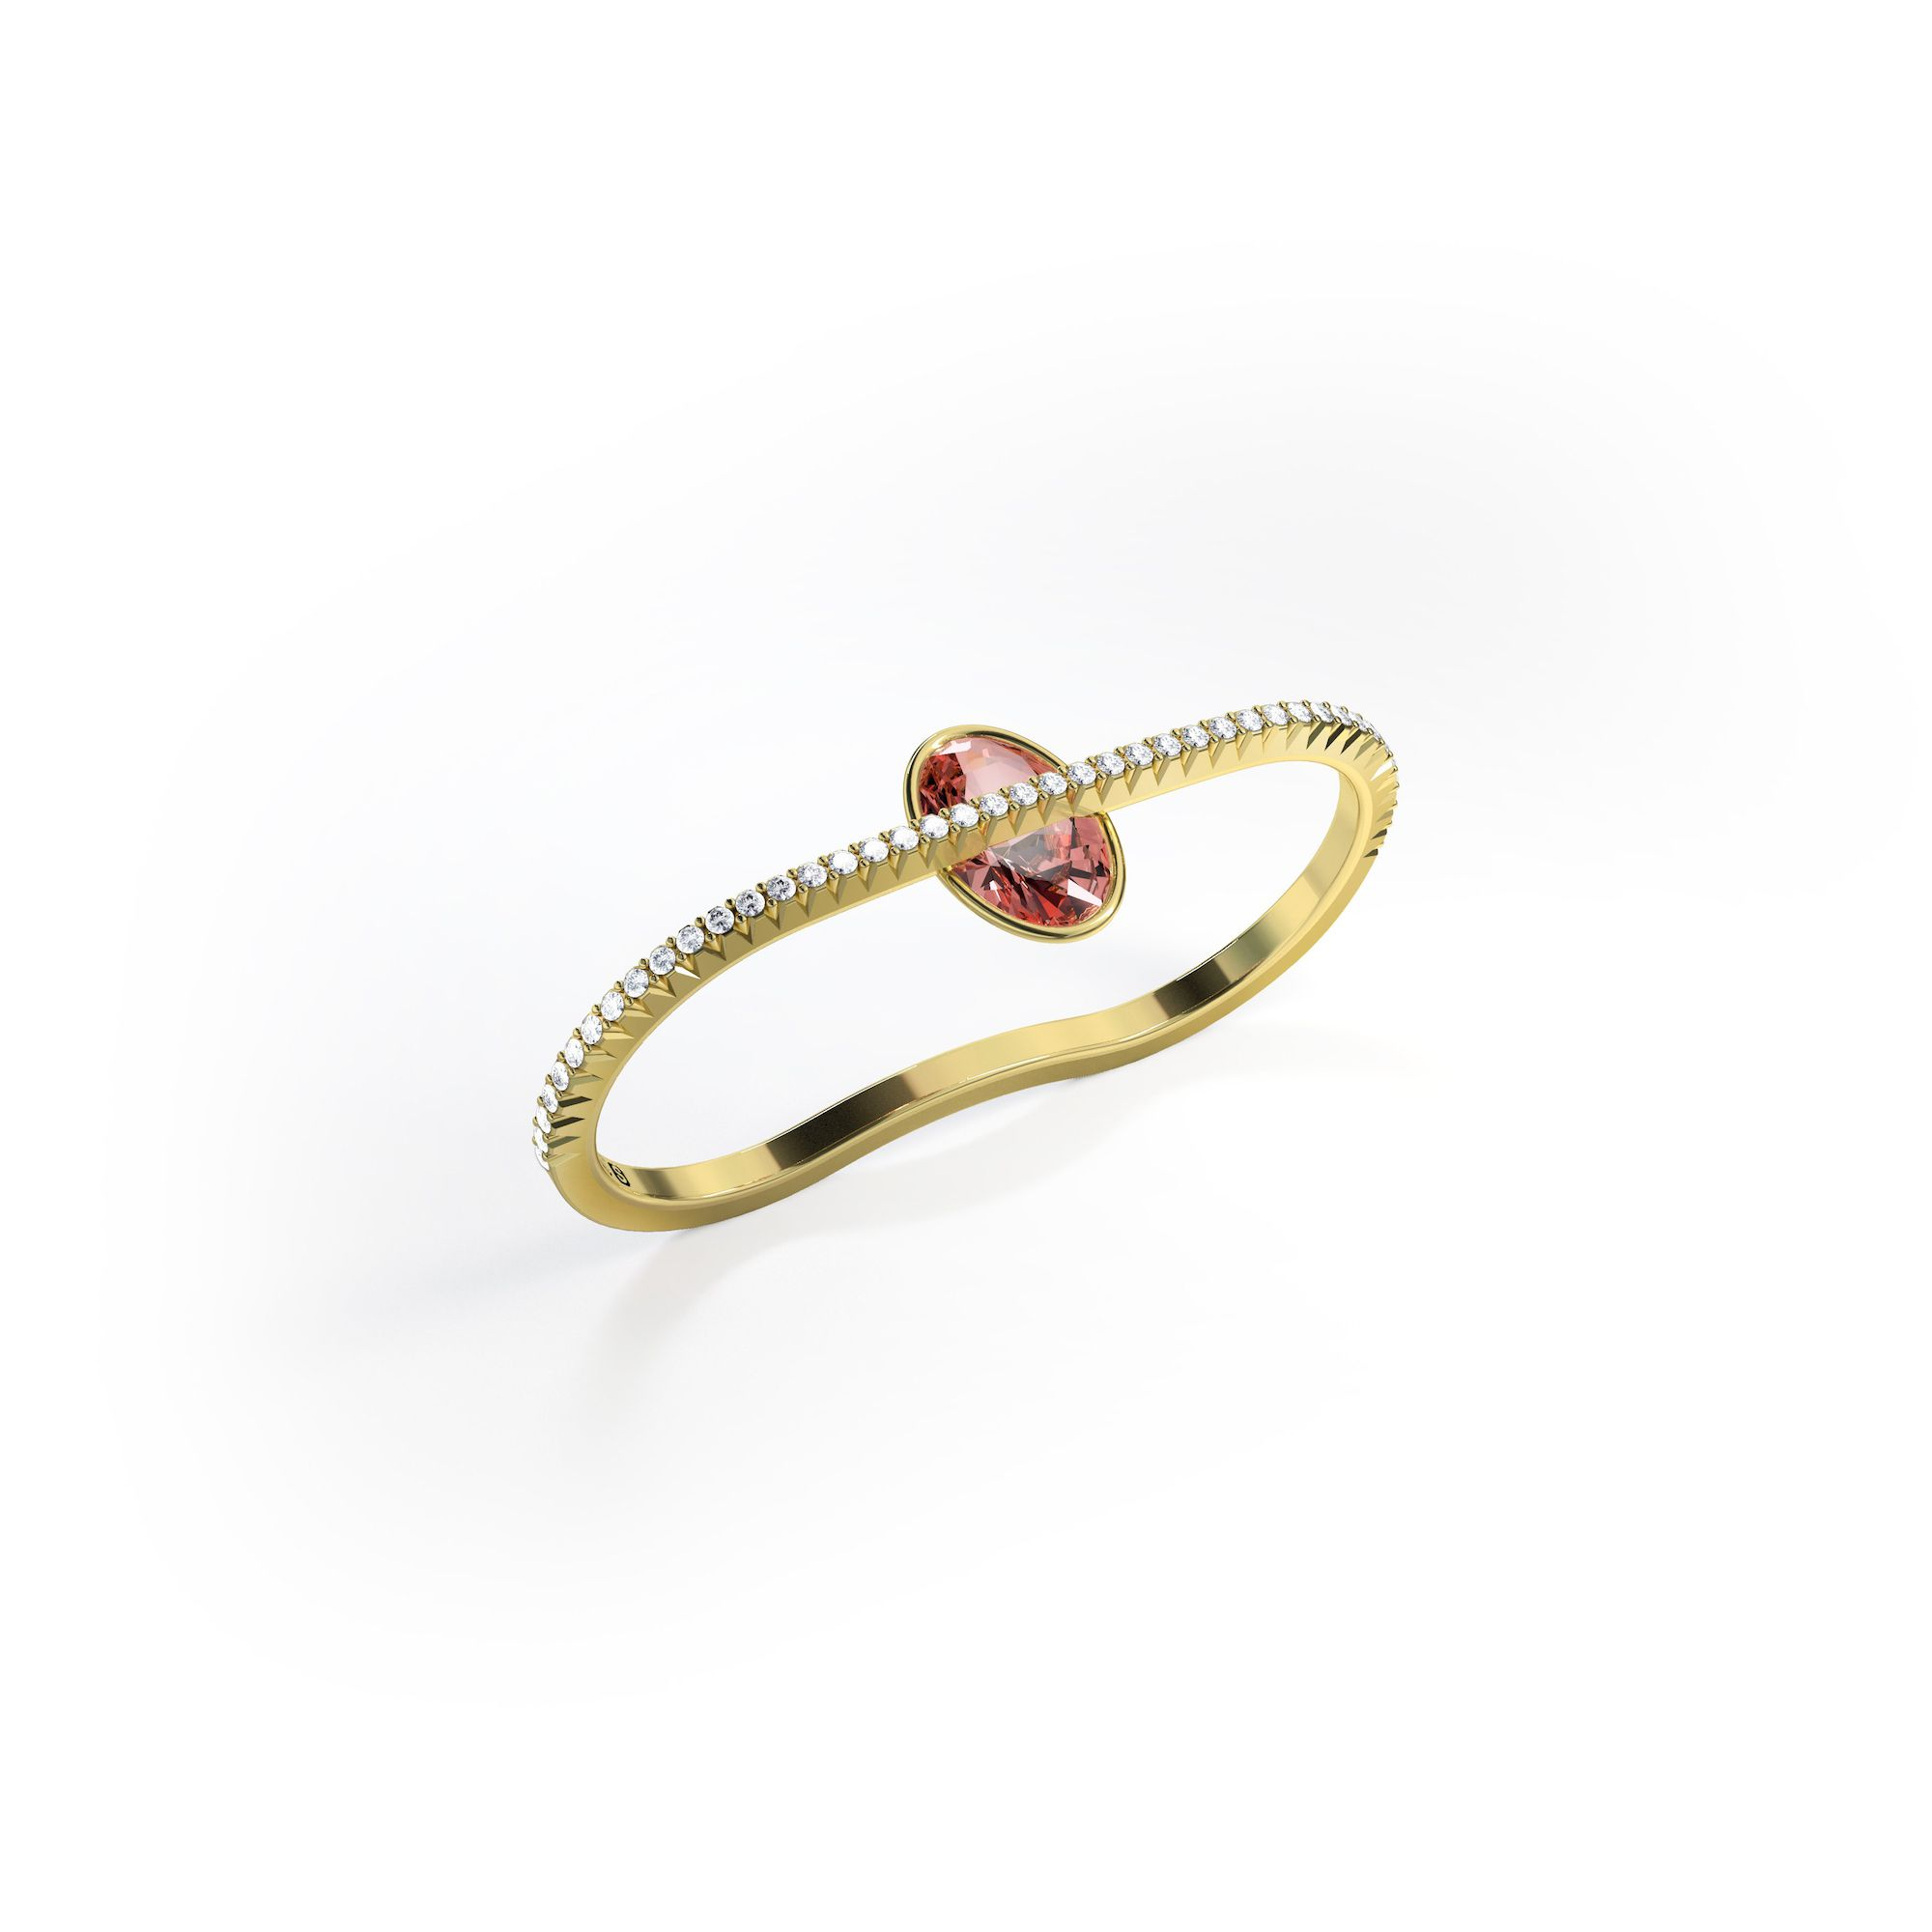 Two-finger engagement ring with yellow gold band on a white background.